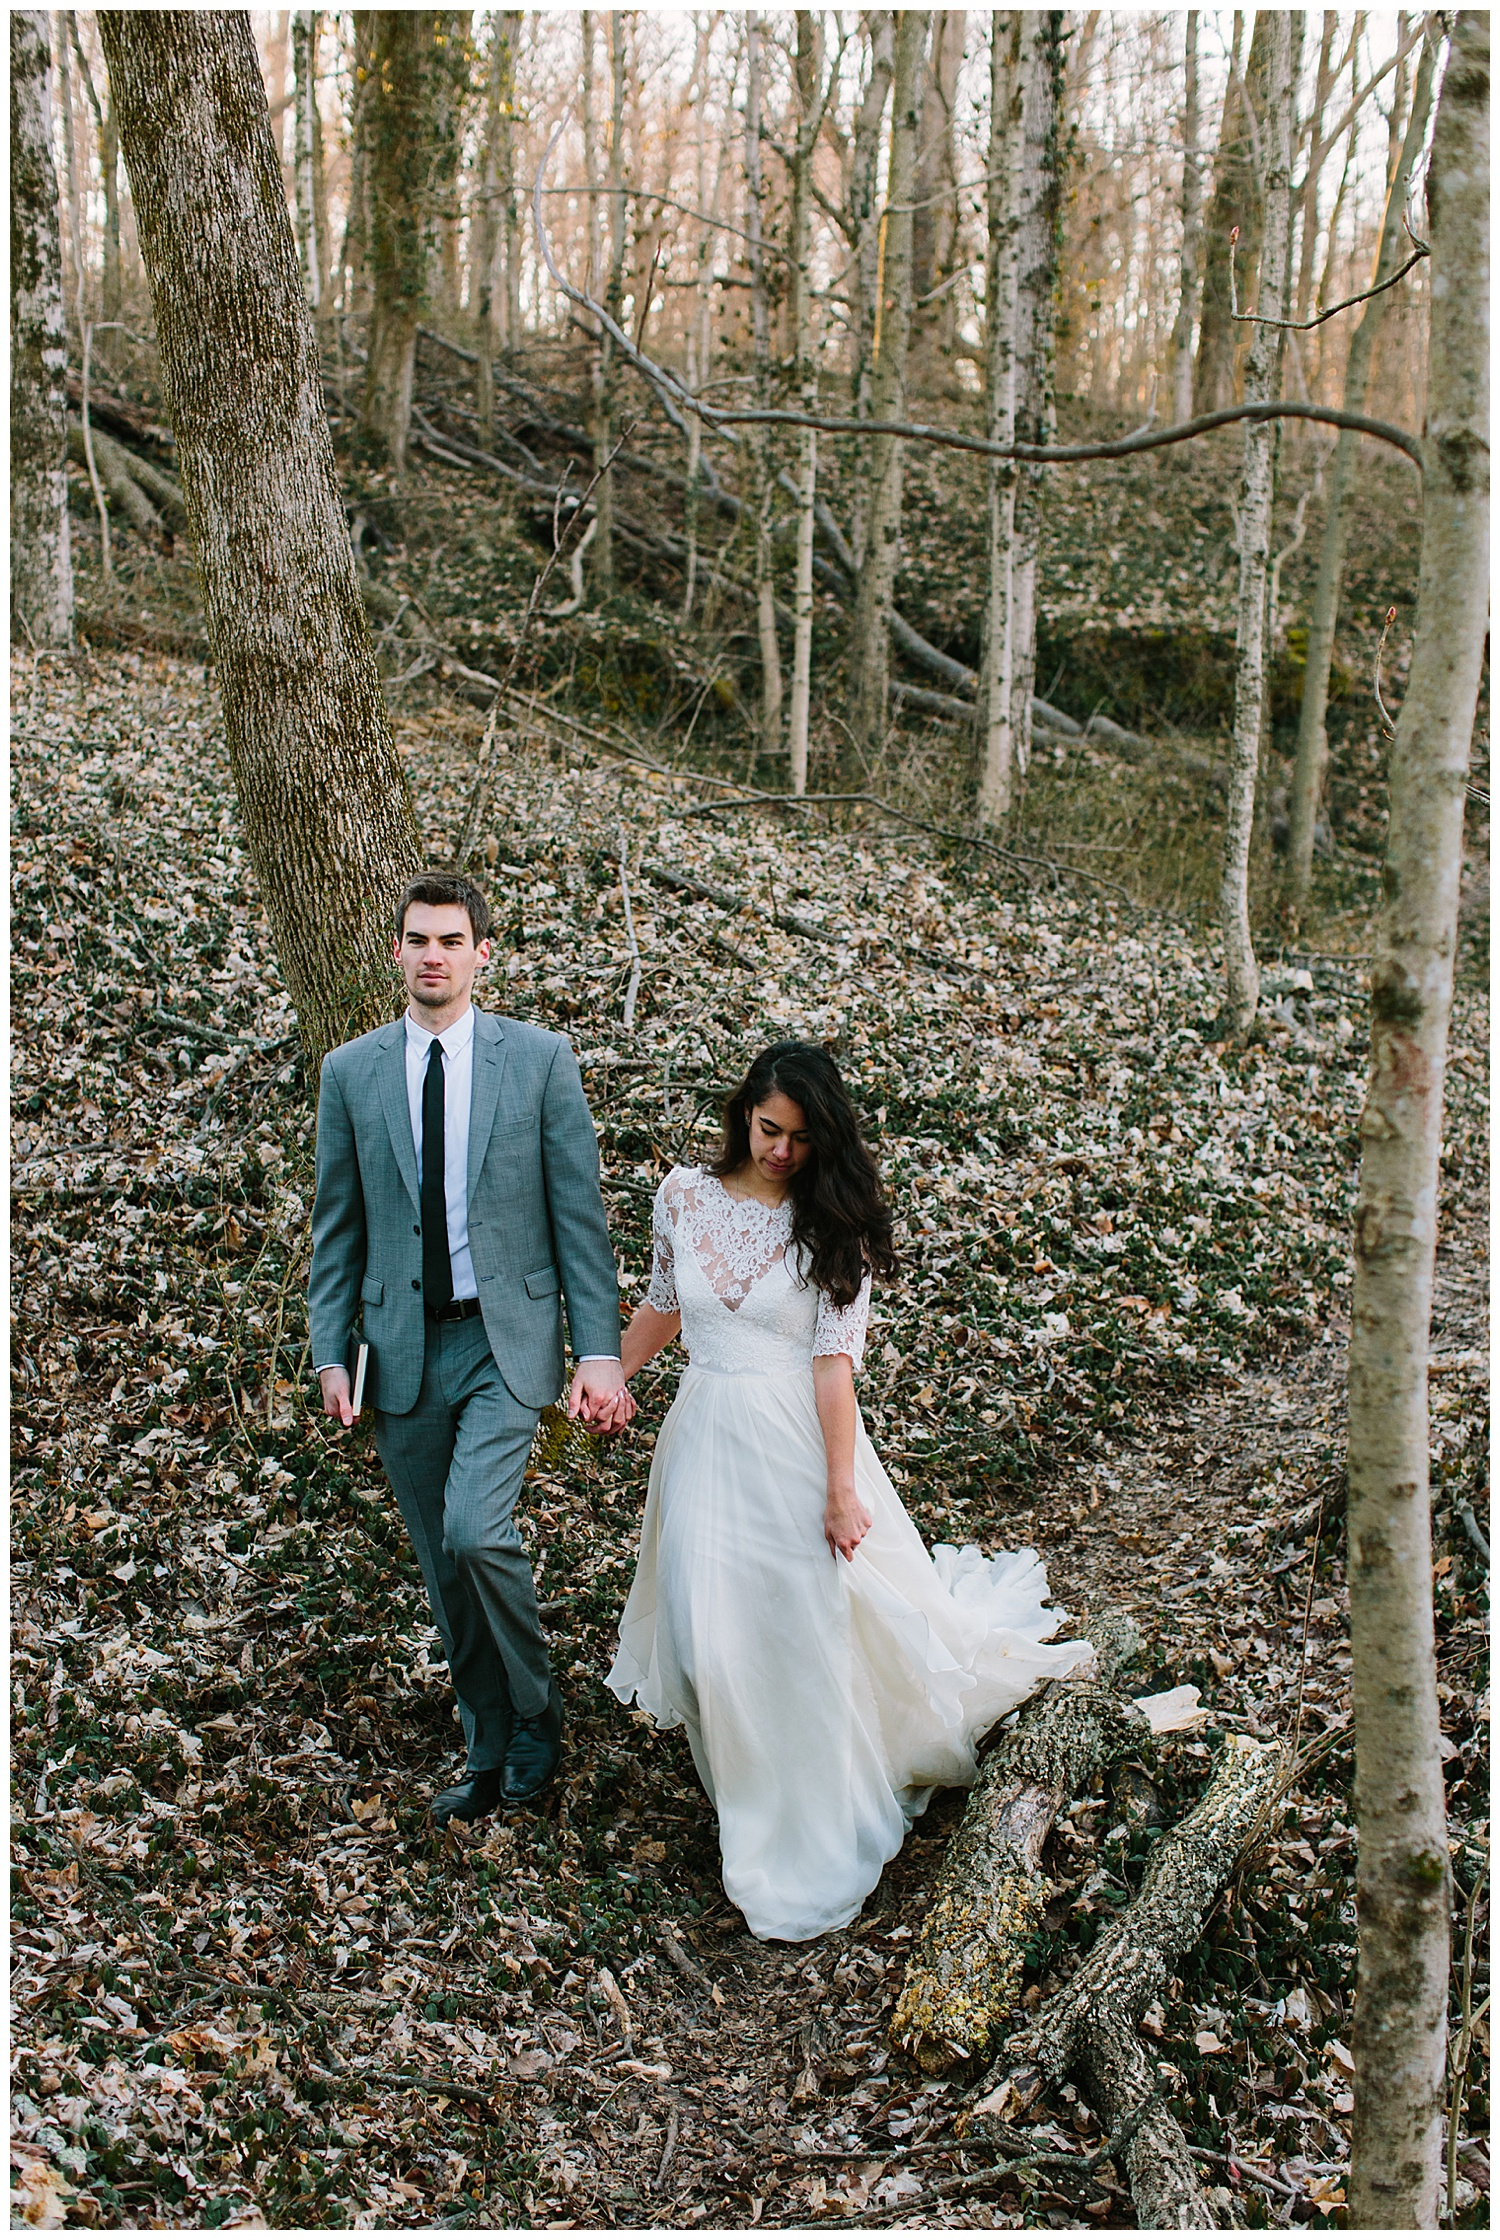 trent.and.kendra.photography.foxhollow.farm.elopement-61.jpg